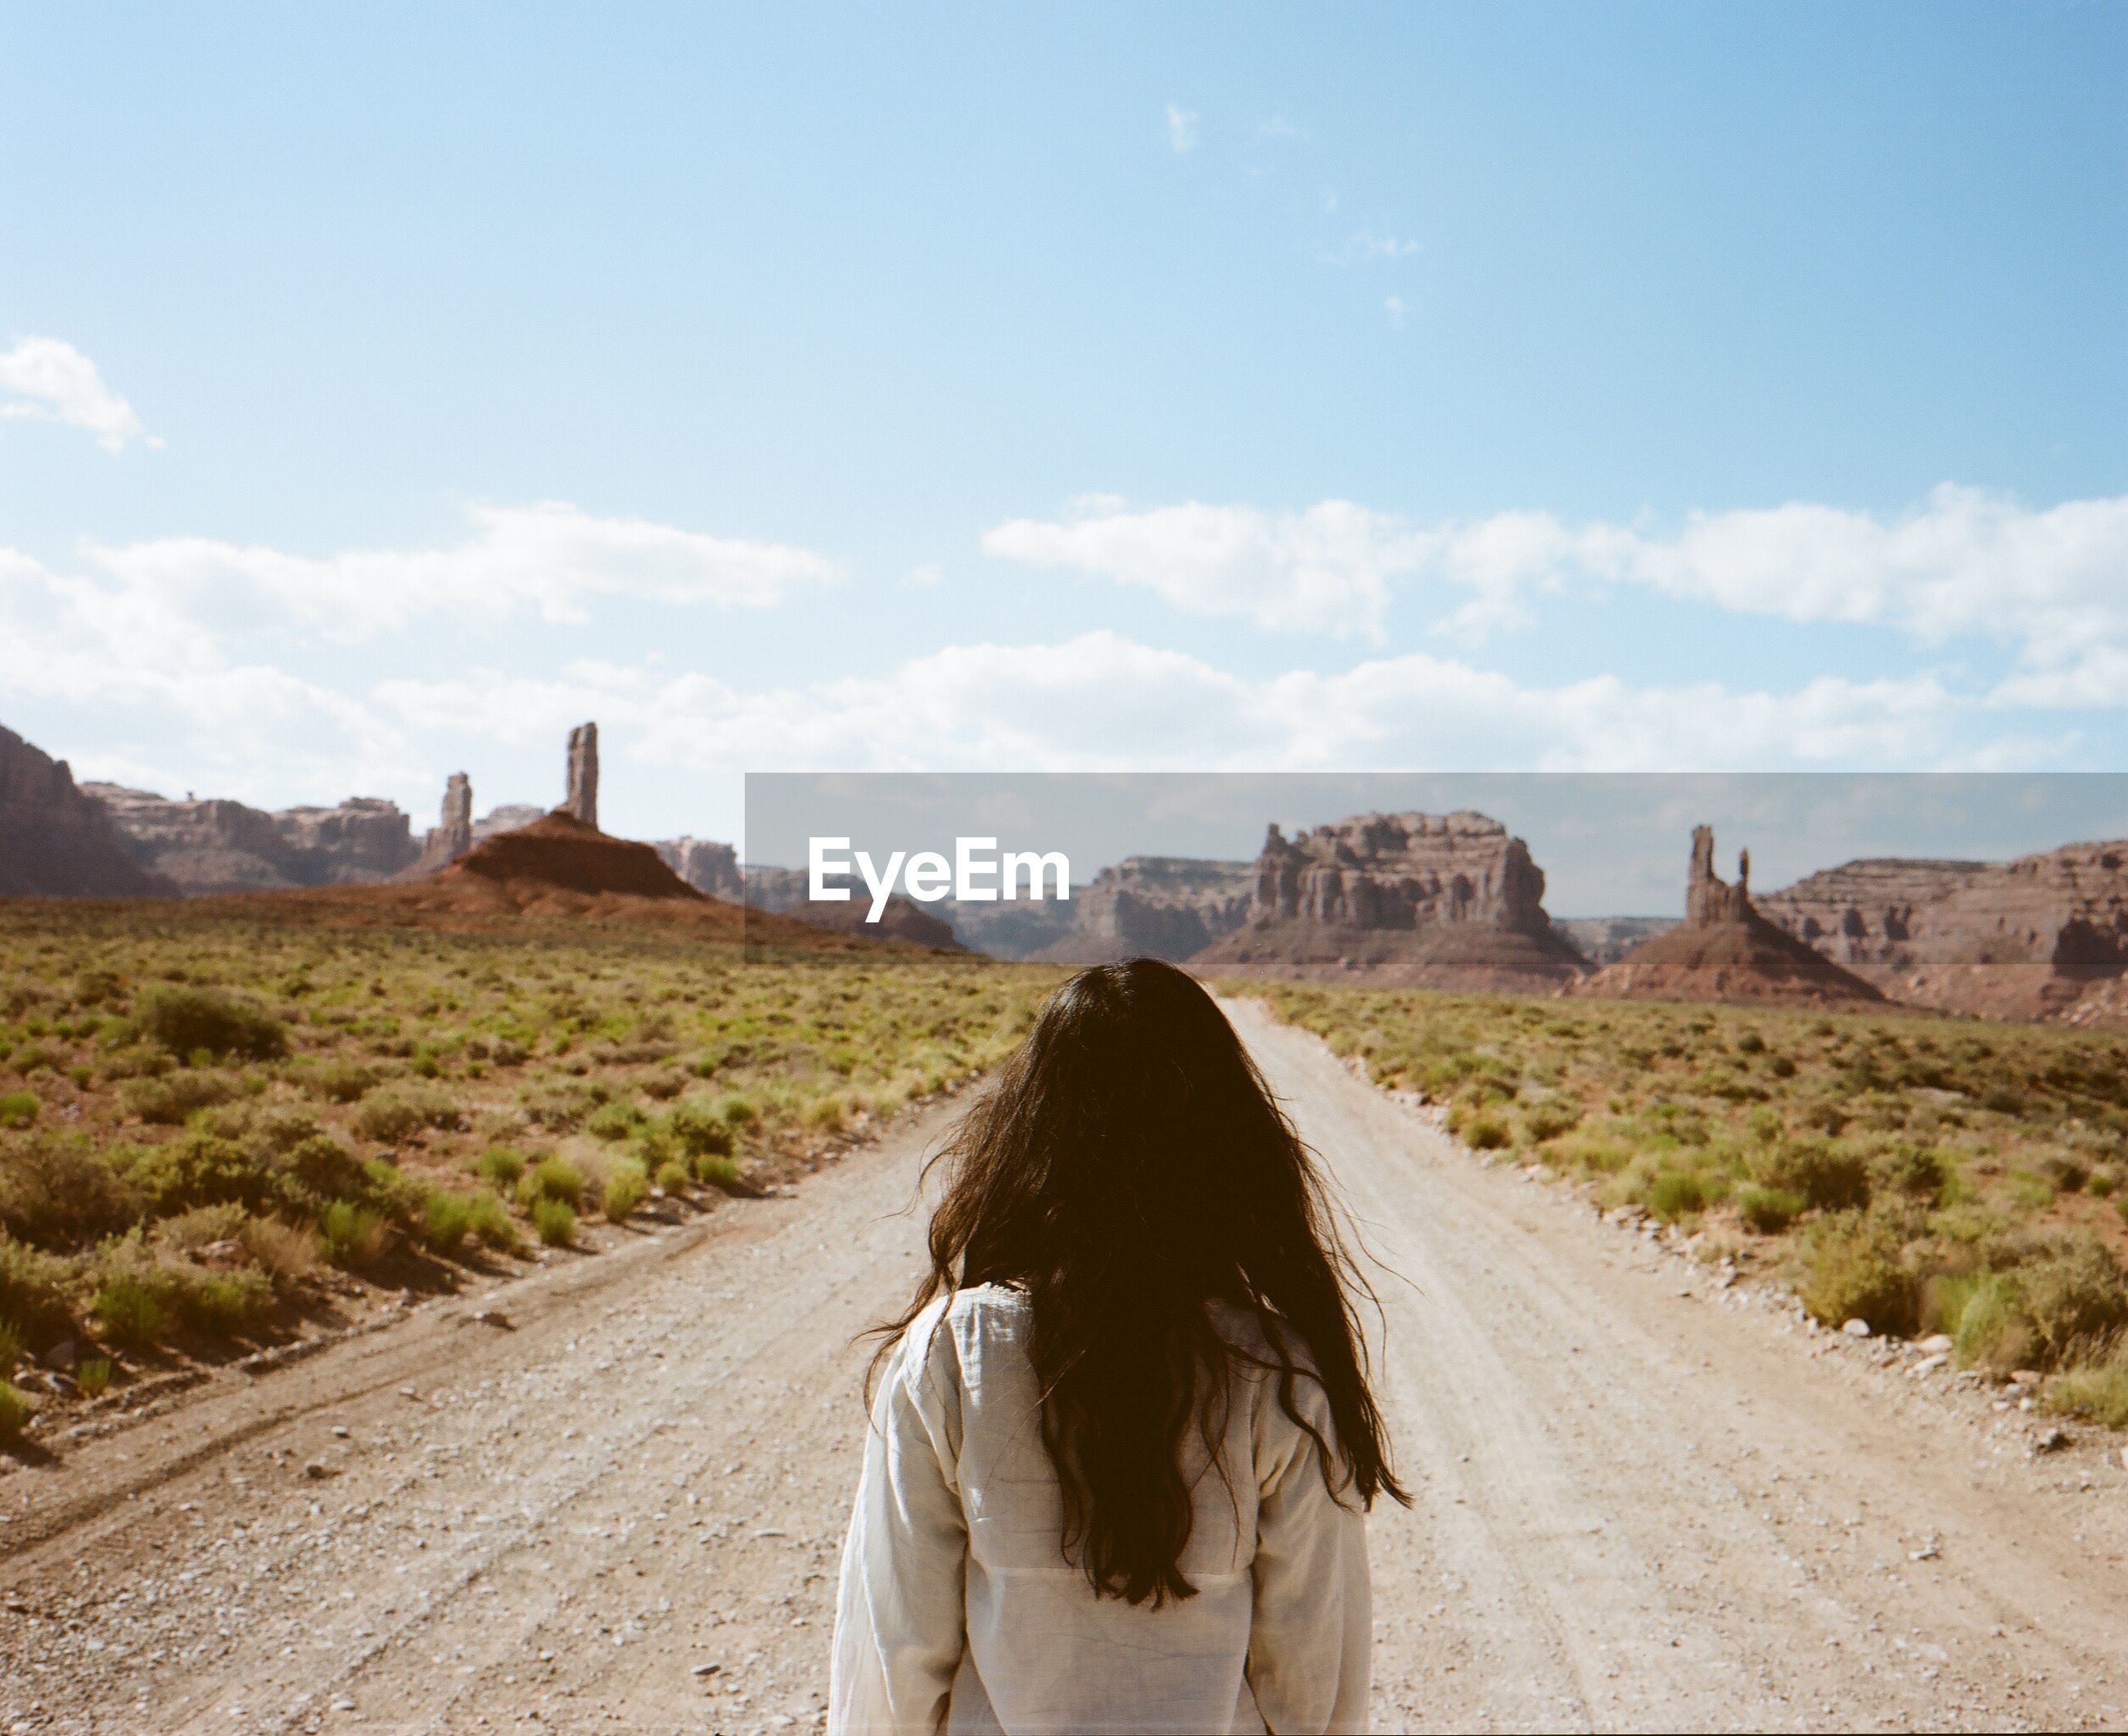 Rear view of woman standing on dirt road in arid landscape against sky